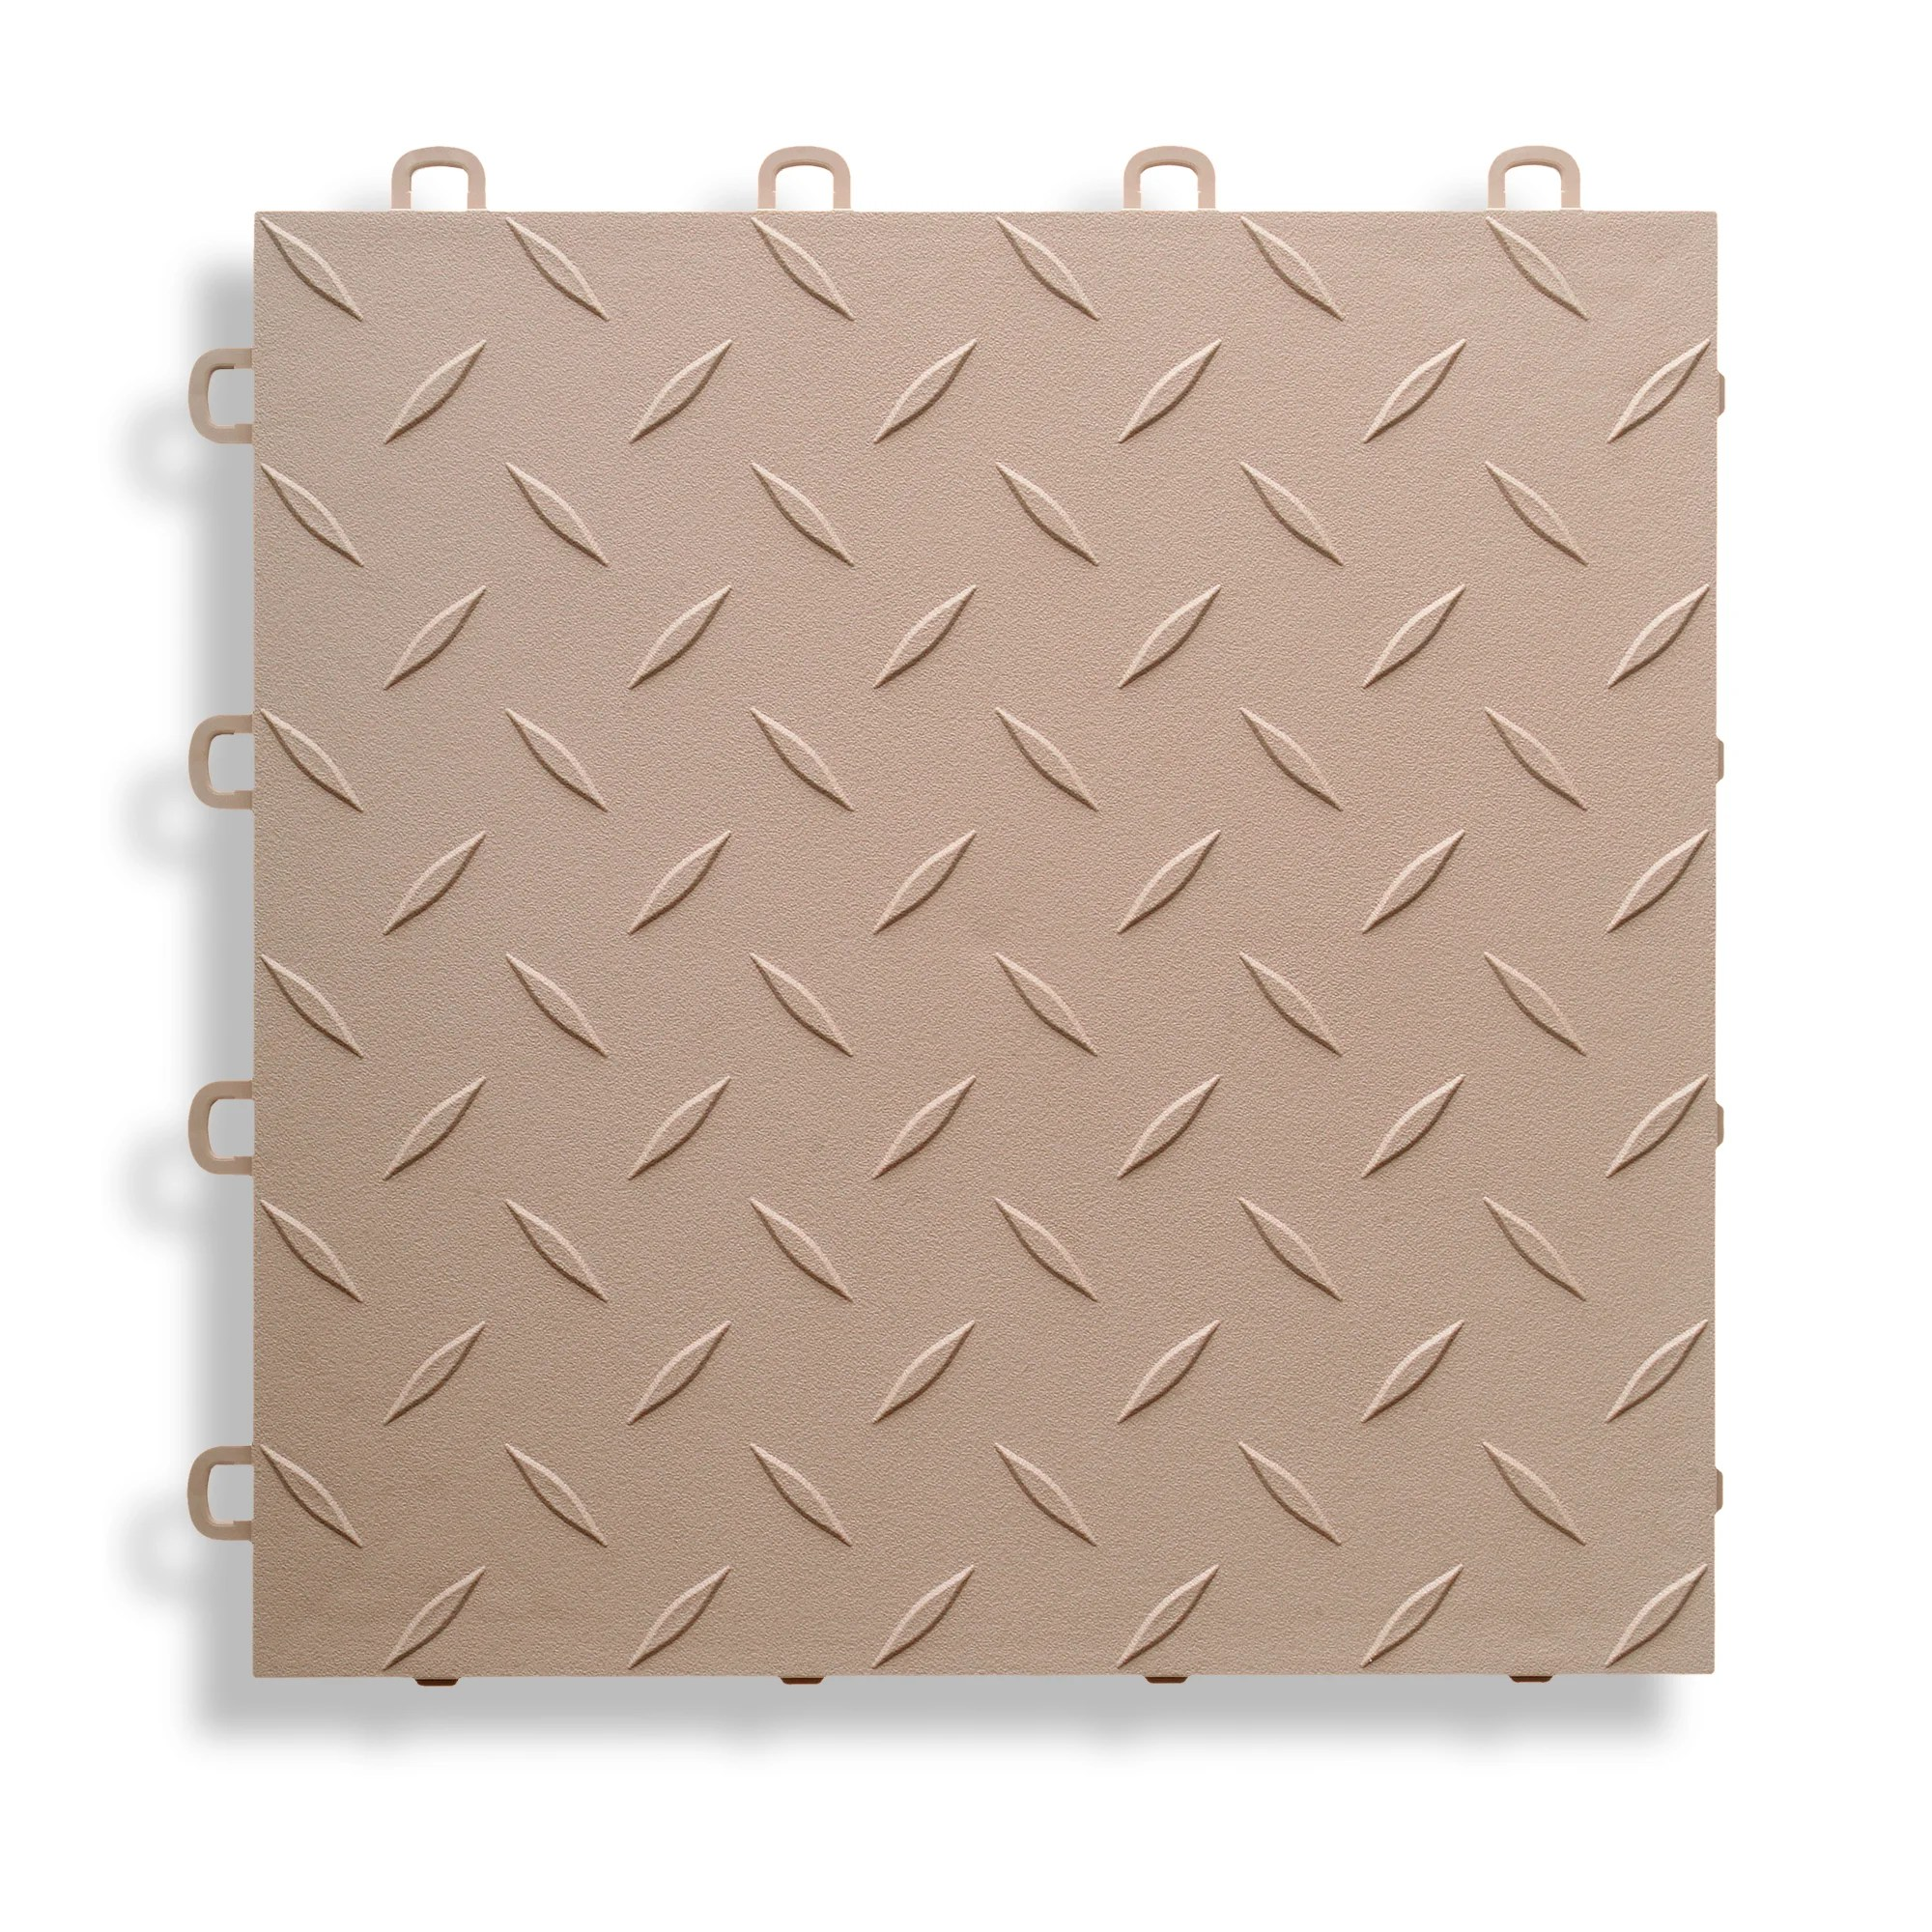 "BlockTile 12"" x 12"" Garage Flooring Tile in Beige"